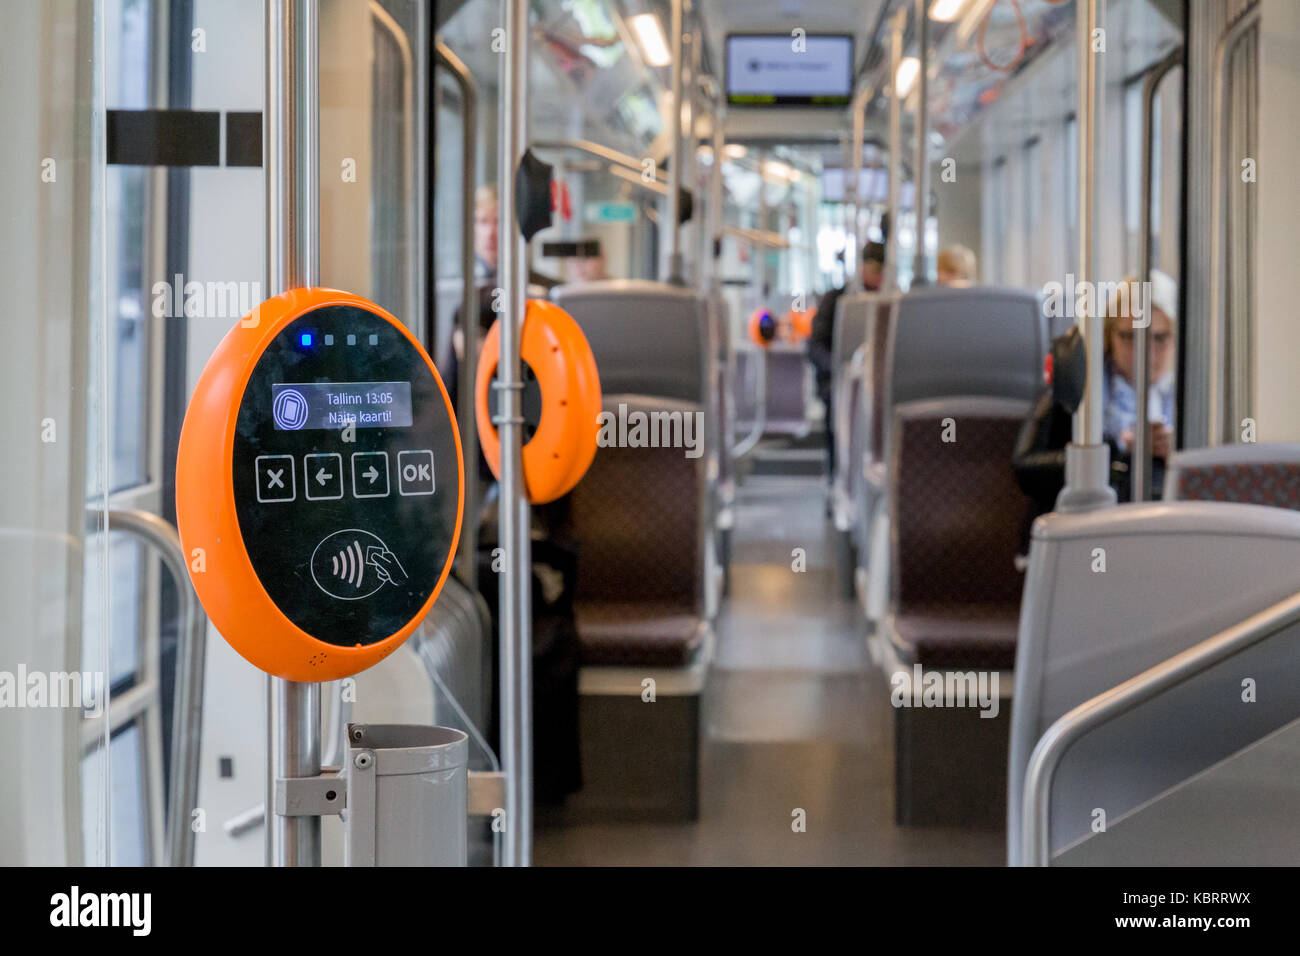 Orange modern magnetic ticket validator with tram and people in background - Stock Image